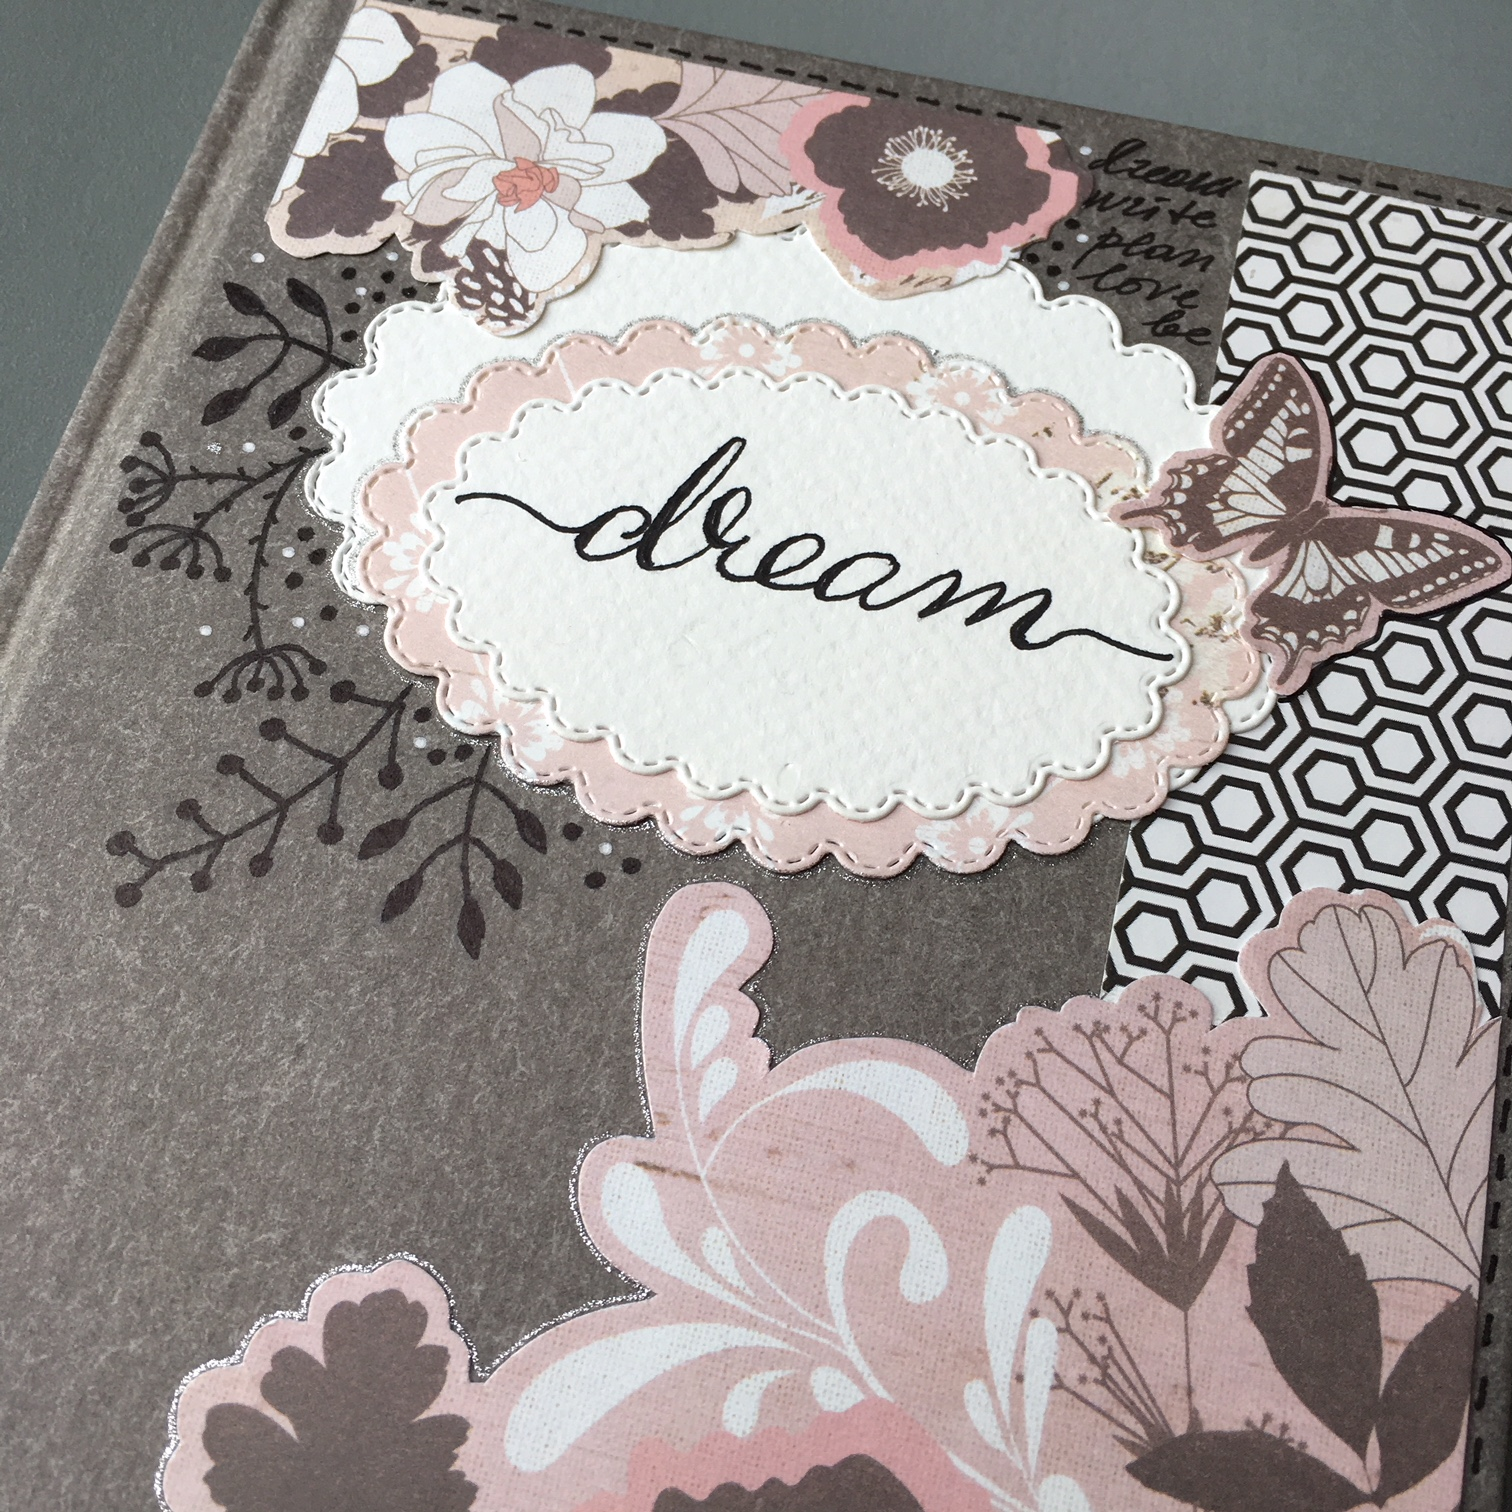 notebook label from white and pink paper and black flowers drawn around